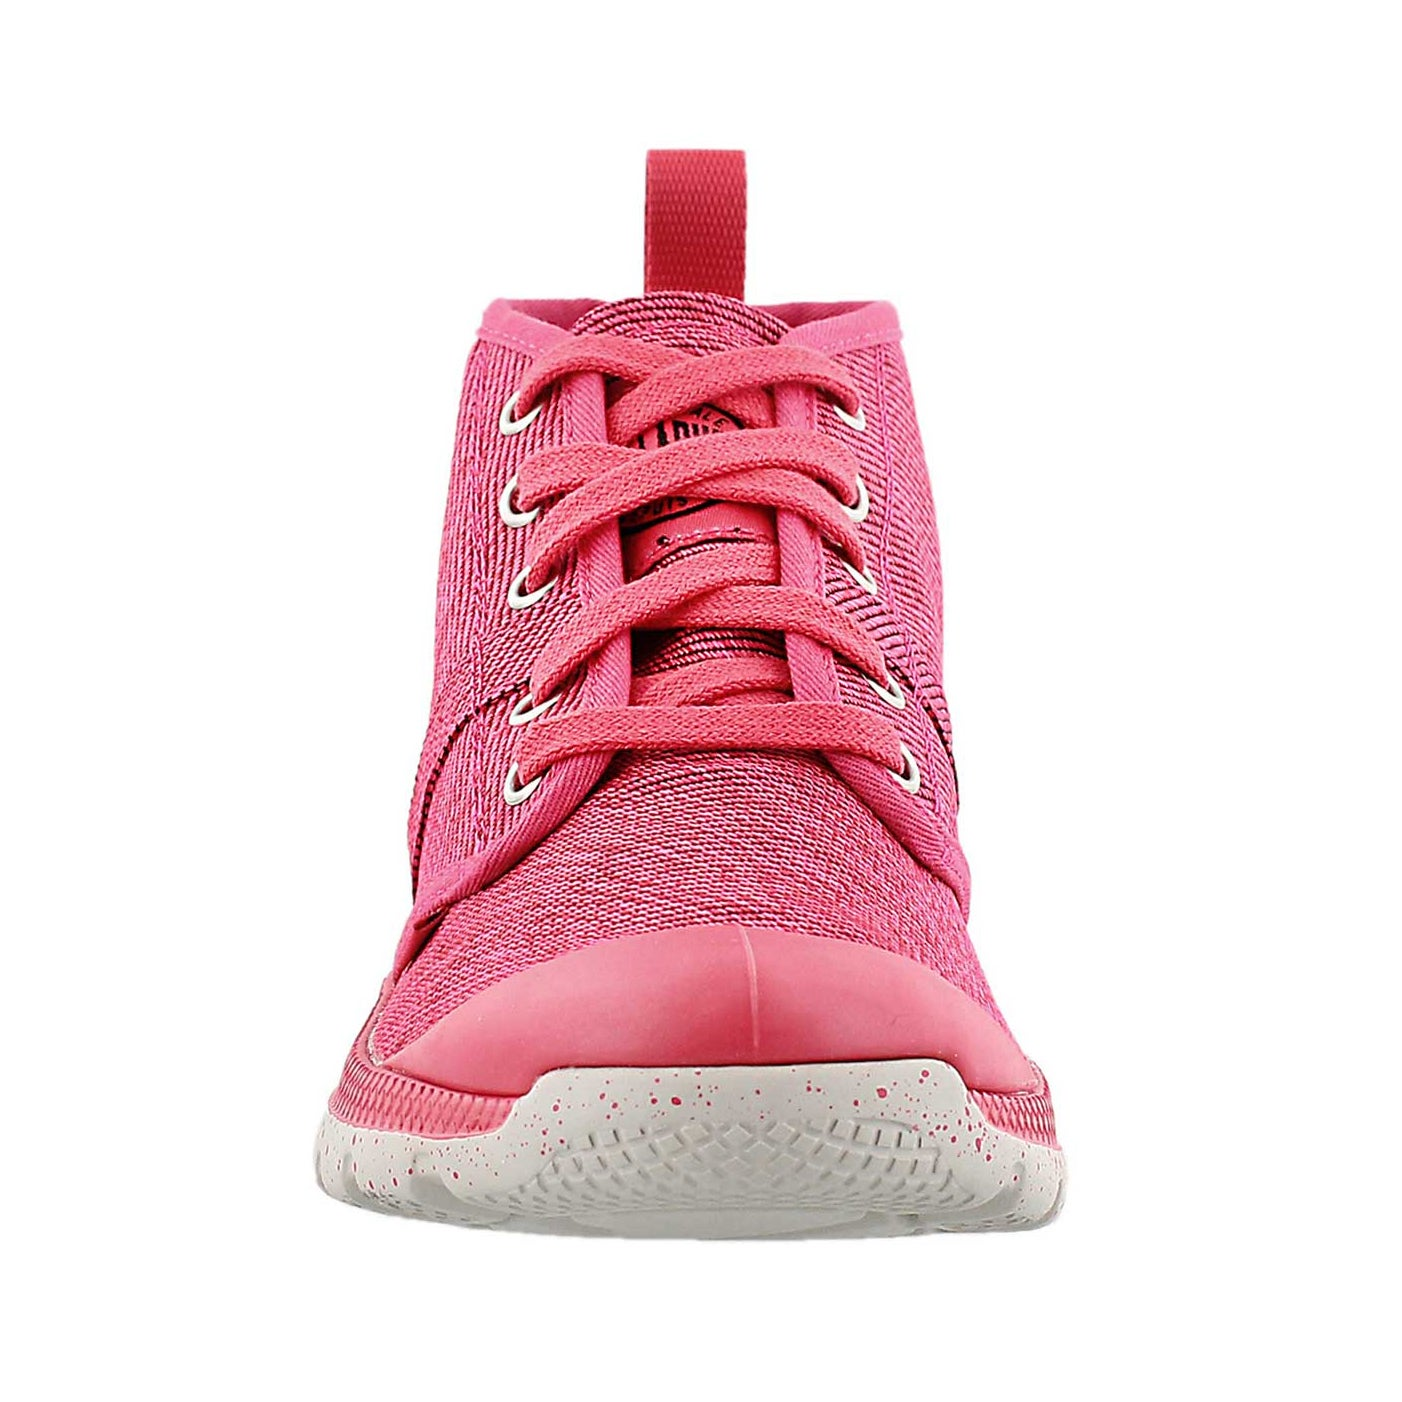 Lds Pallaville Hi red/wnd chme sneaker